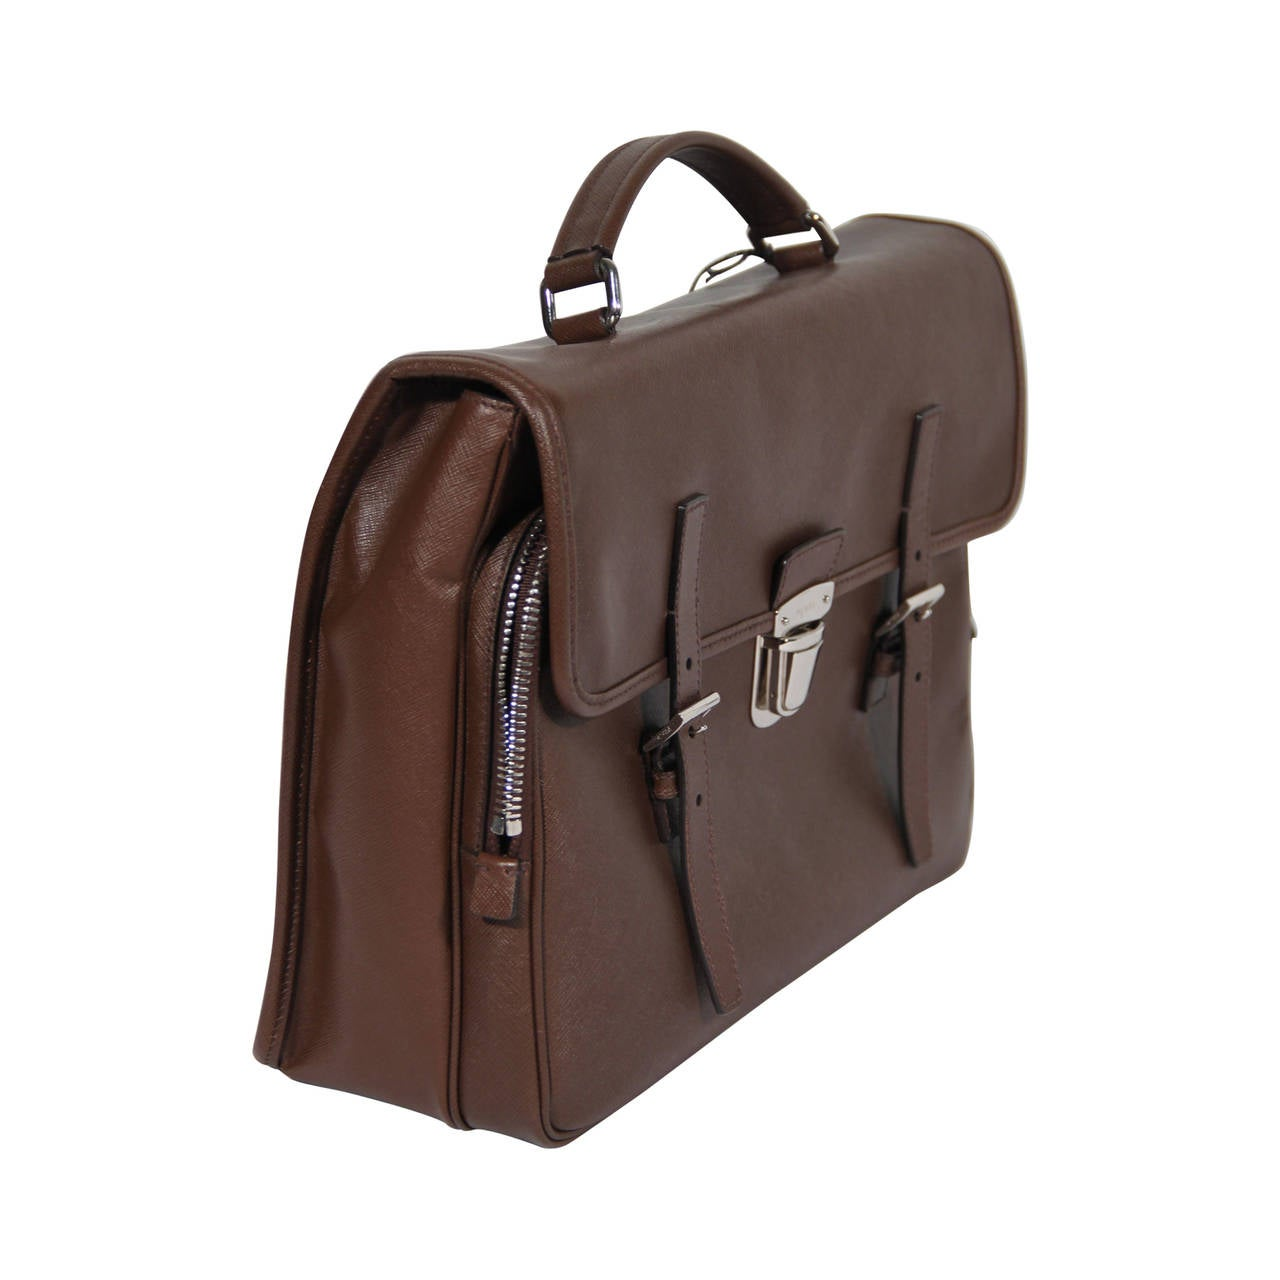 PRADA Authentic Brown SAFFIANO Leather Cartella BRIEFCASE Satchel ...